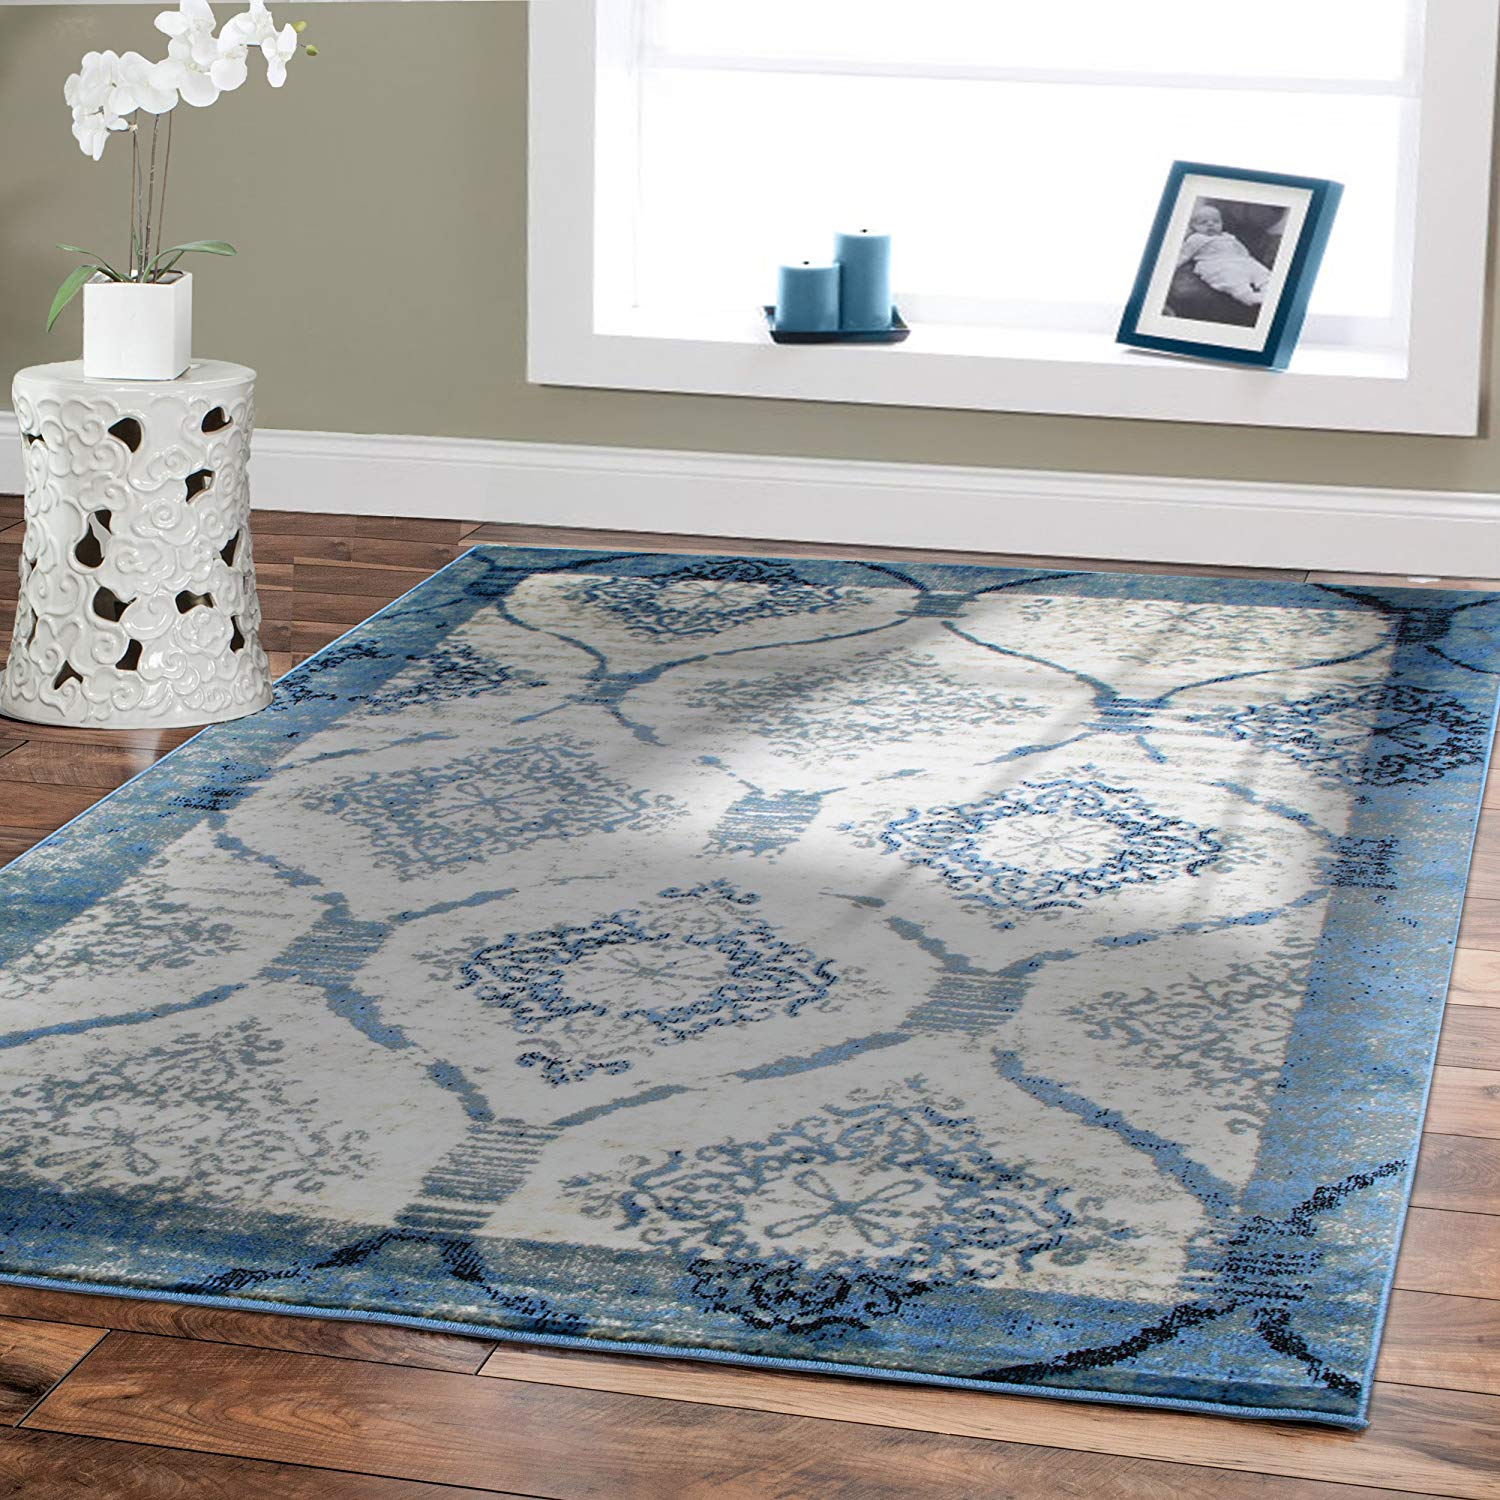 amazon.com: contemporary rugs for living room 5x8 blue area rug modern rugs KNWJBBD